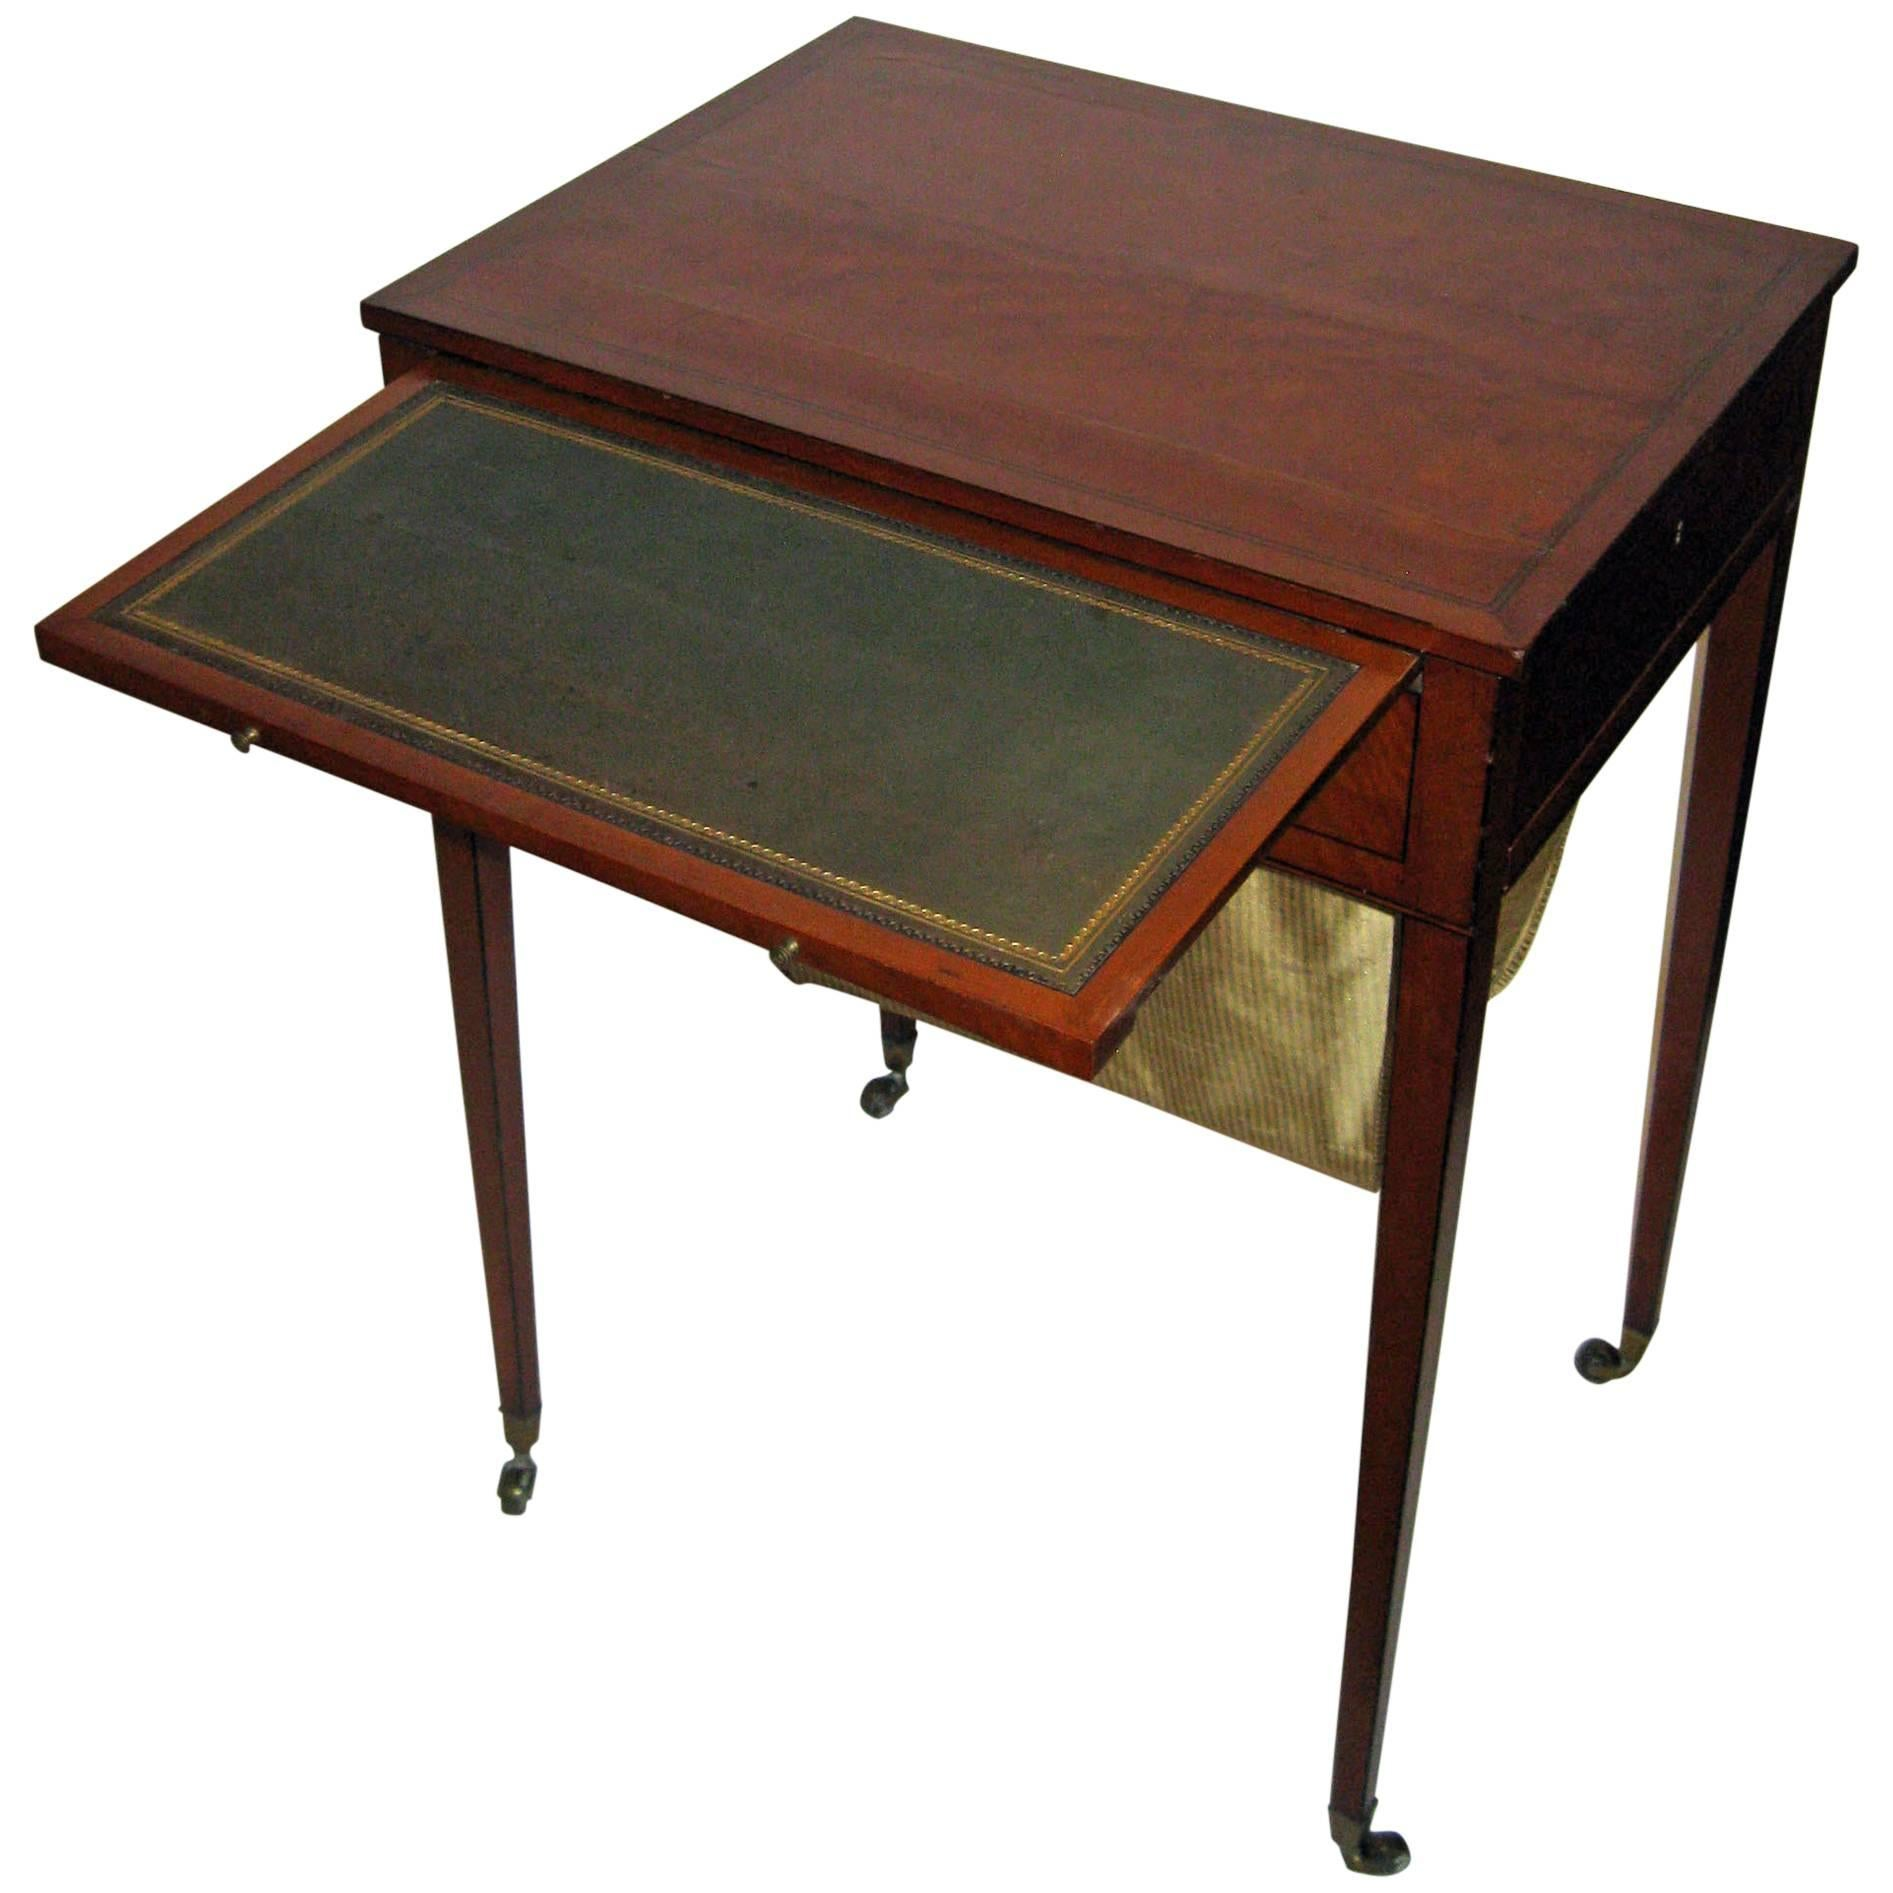 18th century Hepplewhite Satinwood Writing Table with Work with Silk Basket